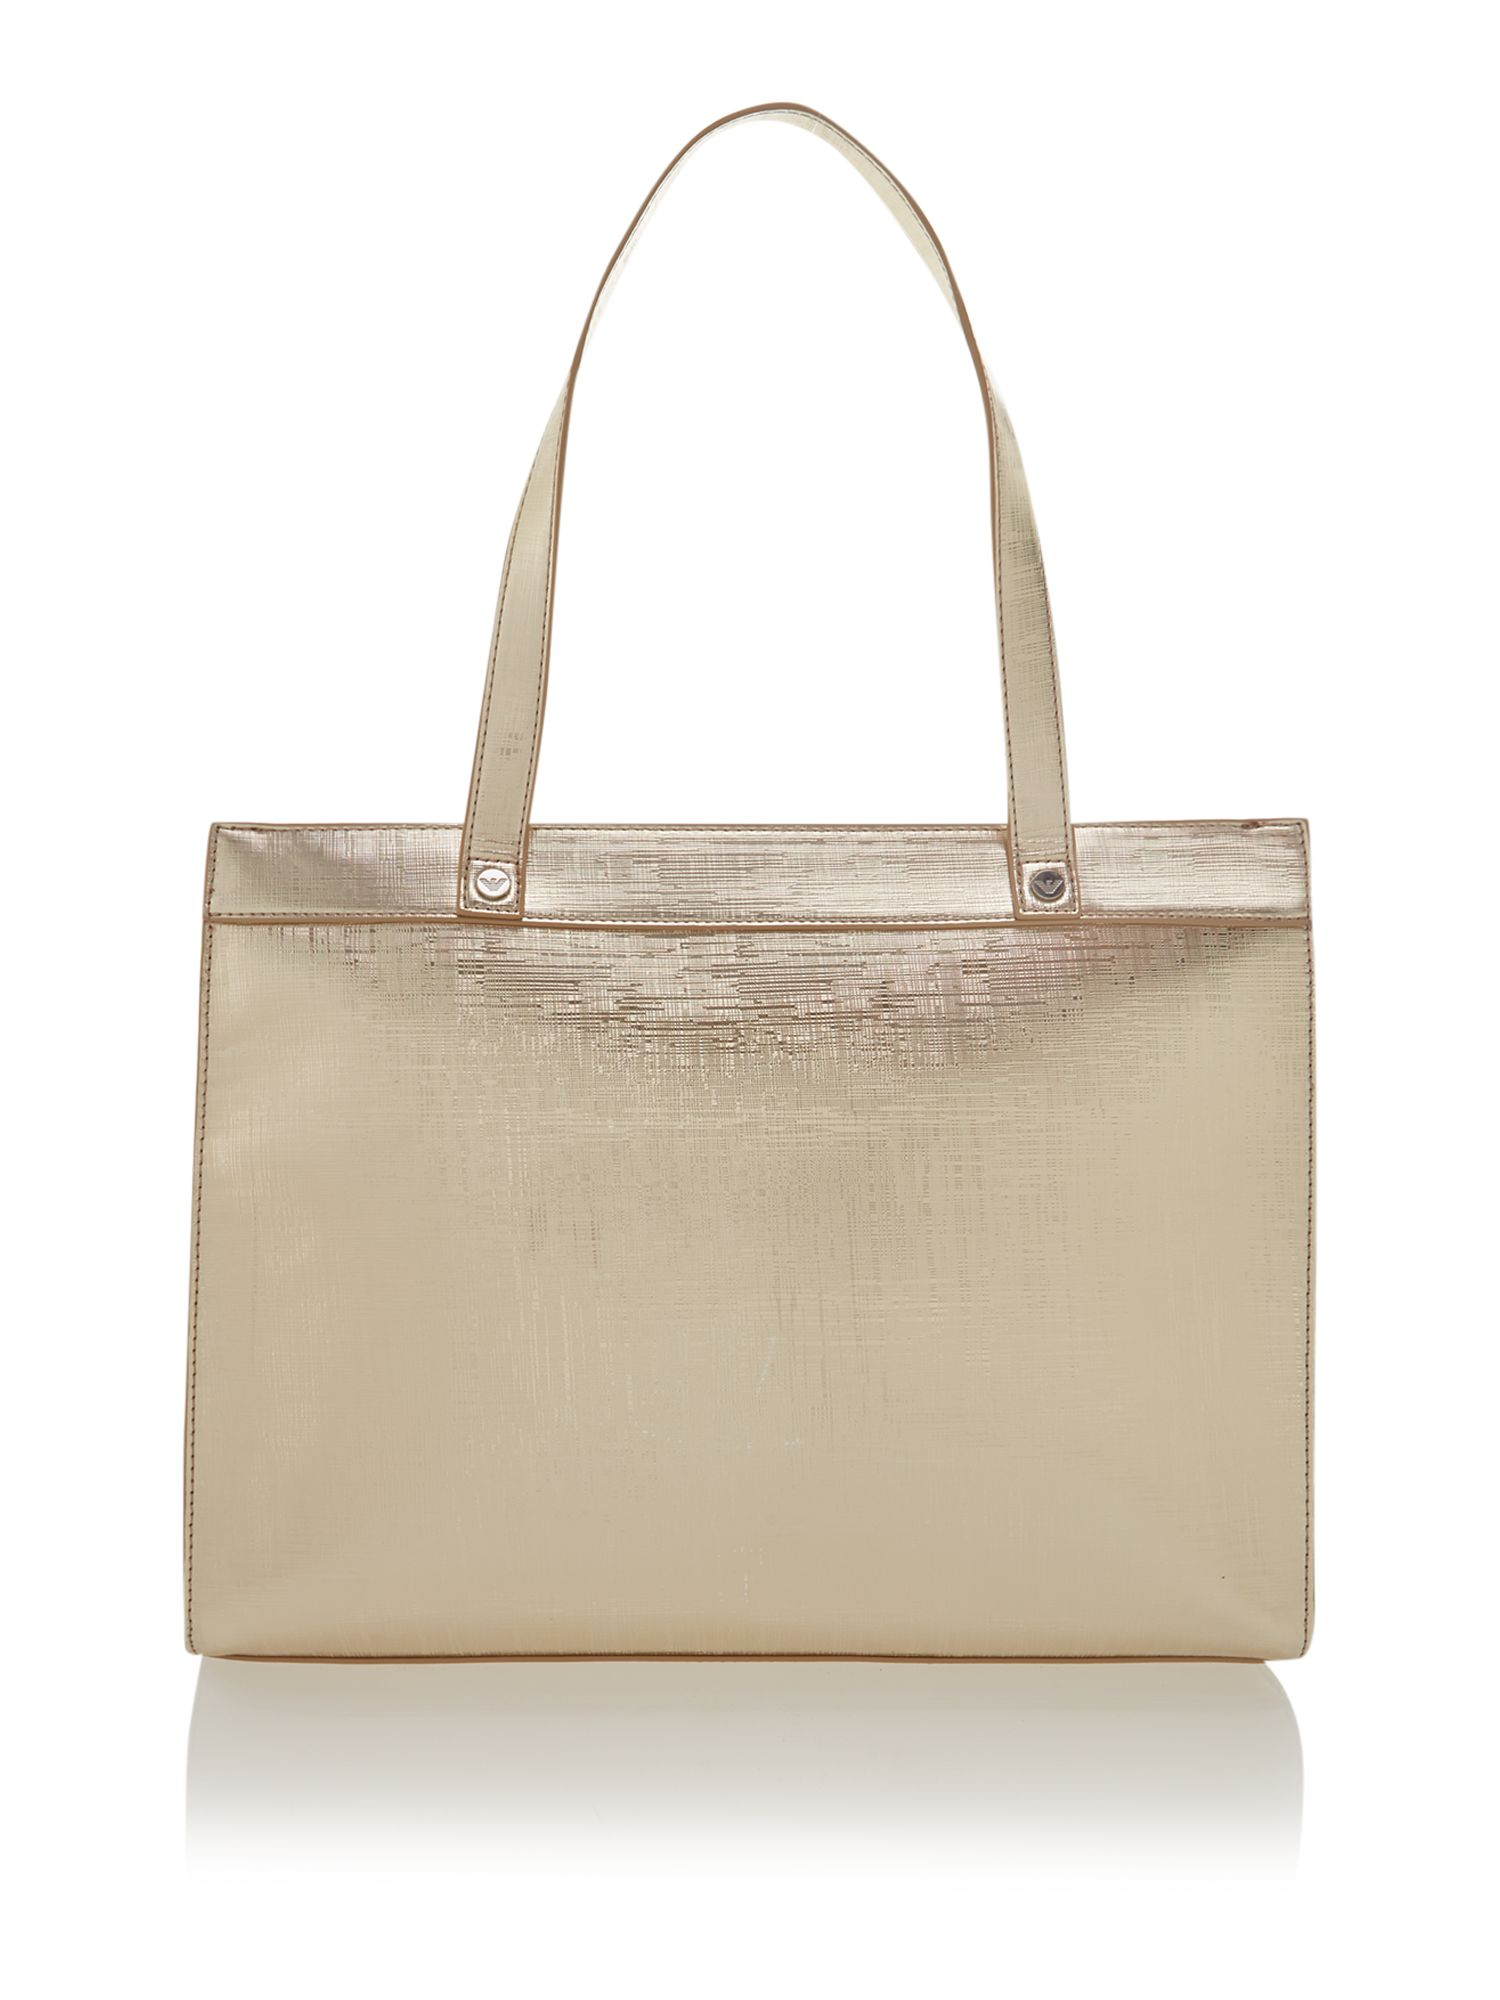 Medium metallic gold tote bag